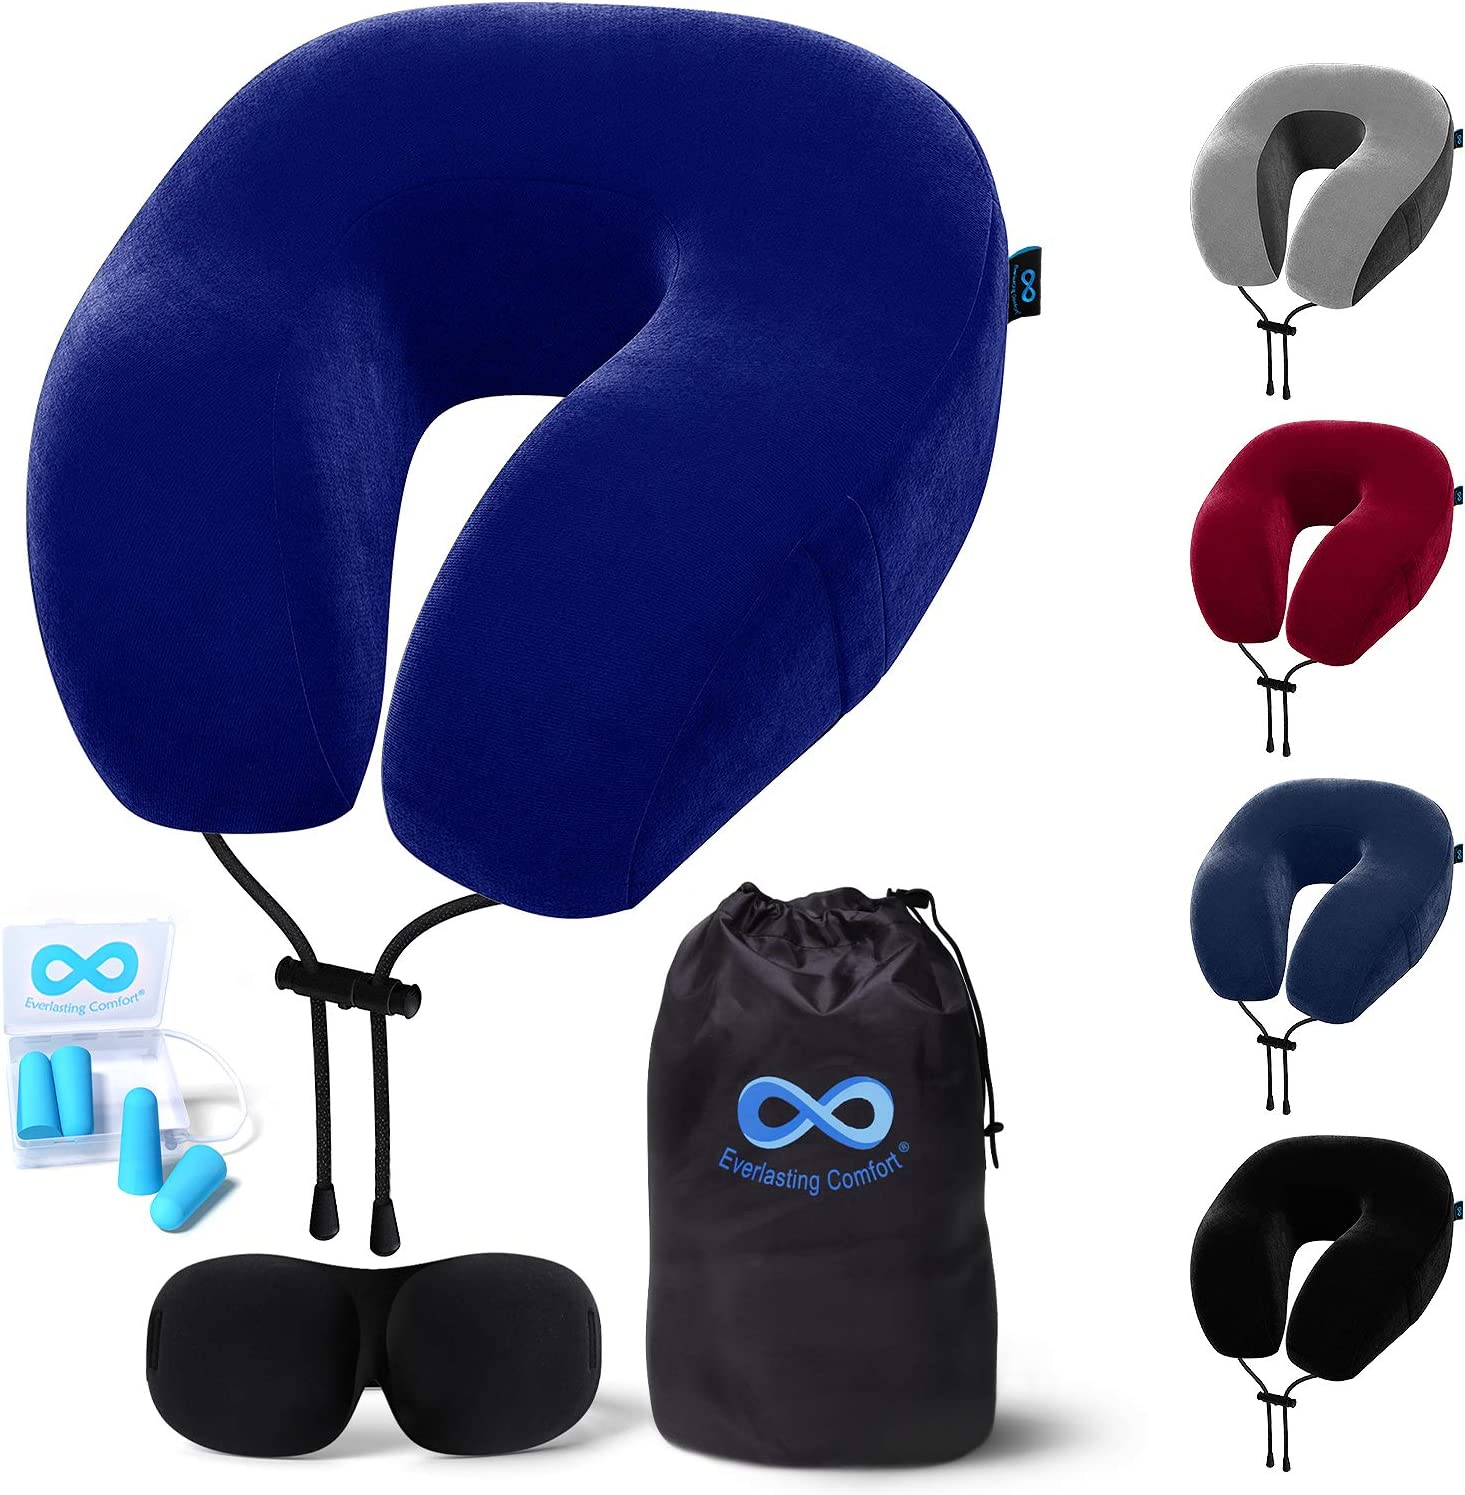 Everlasting Comfort Memory Foam Travel Pillow - Includes Eye Masks and Earplugs - Neck Pillow for Airplane (Blue)